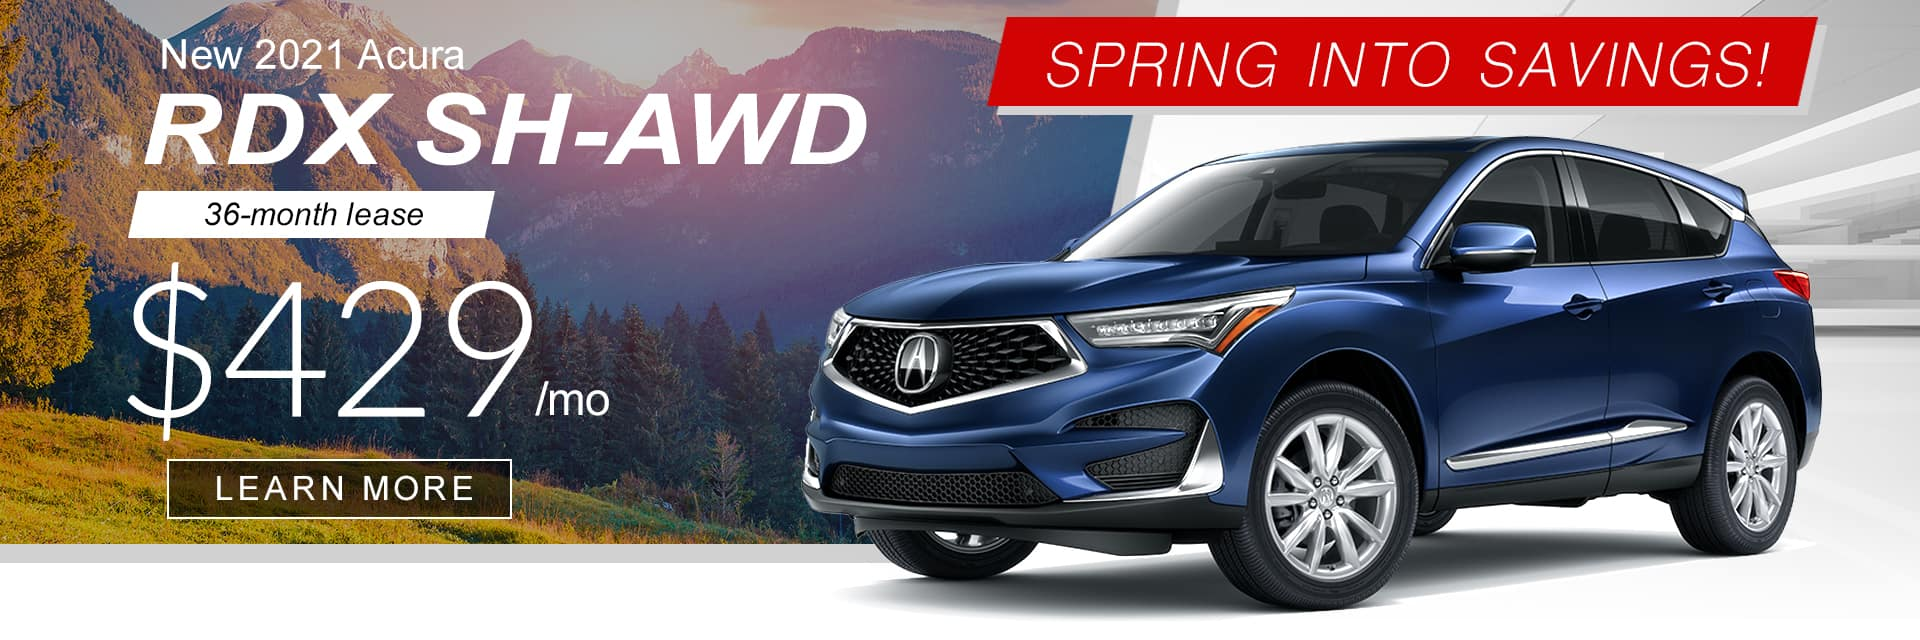 2021 RDX Spring into Savings Banner